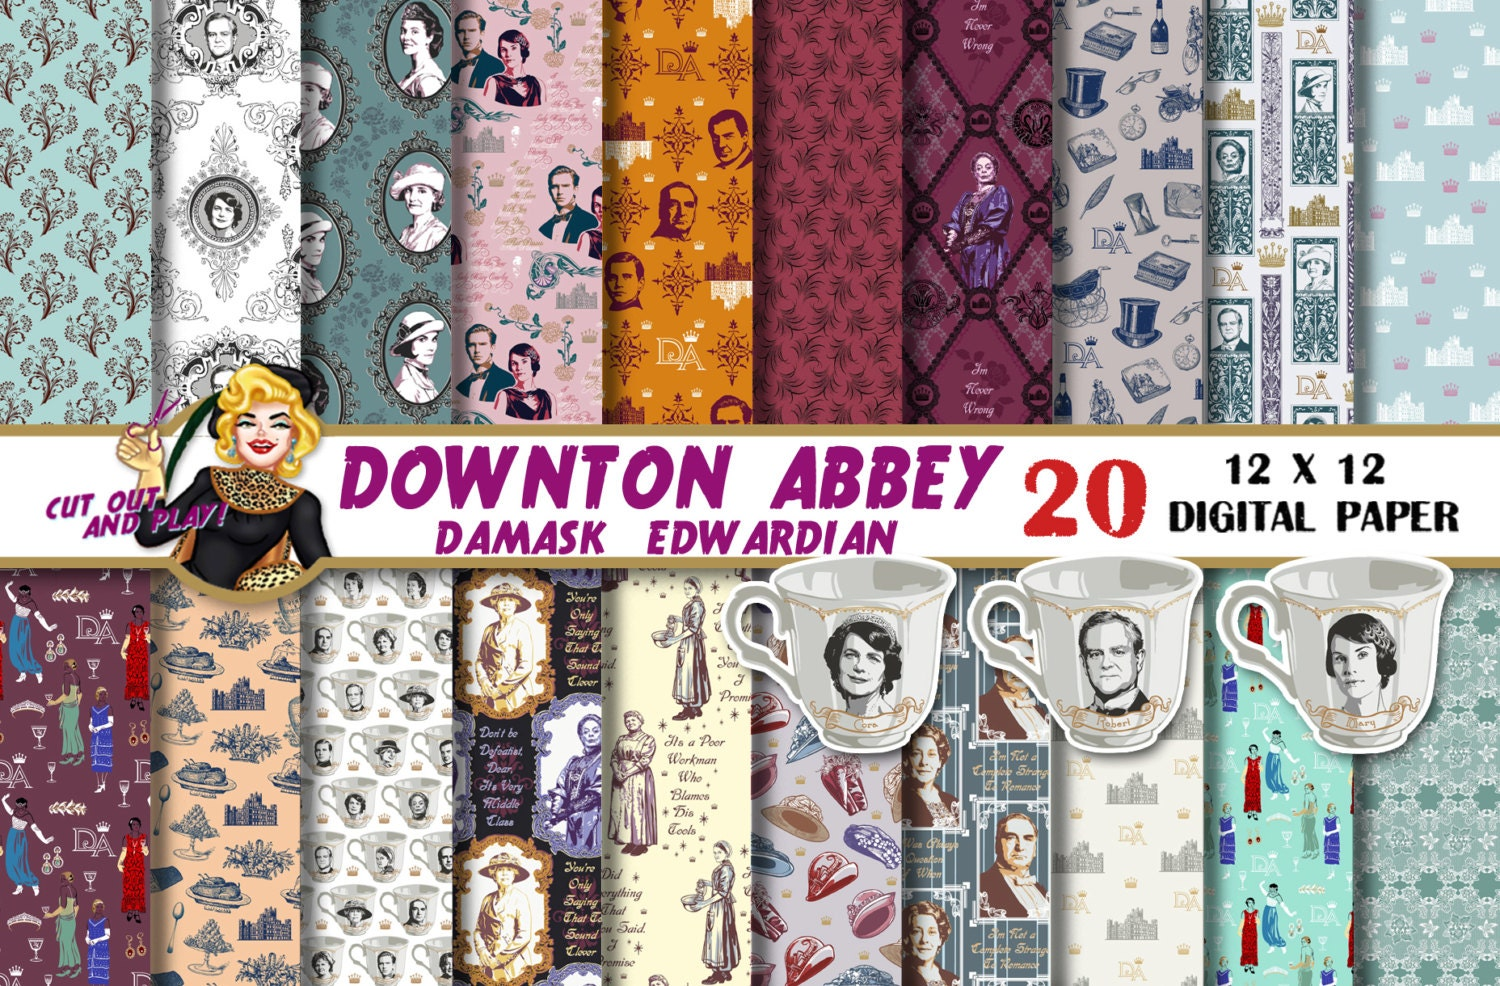 downton abbey theme paper Host an elegant high tea party with your ladies by following this cute (and oh so refined) downton abbey inspired tea party video tutorial his is a party at which the dowager countess of grantham wouldn't turn up her nose.